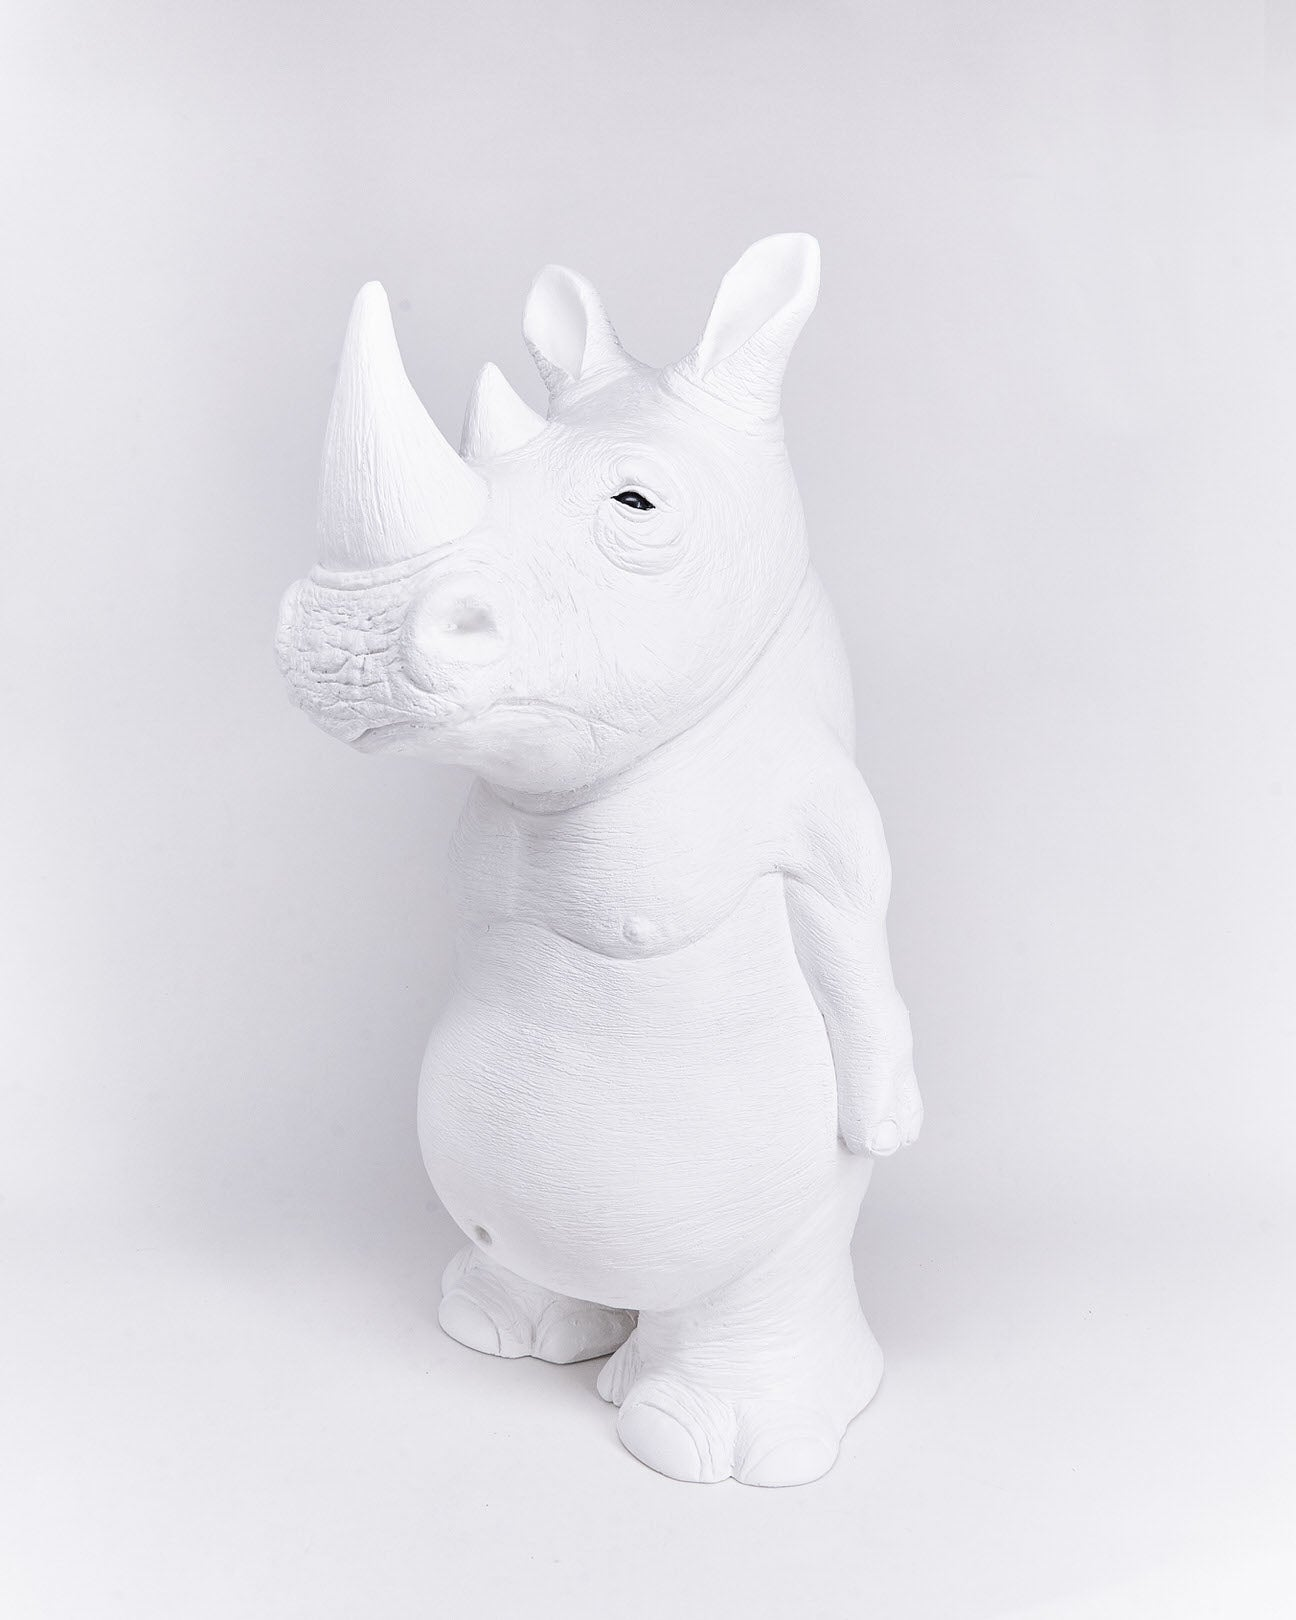 Rhino-ceramic-animal-object-left-handmade-Ornamante-localdesigner-Nuovum-barcelona